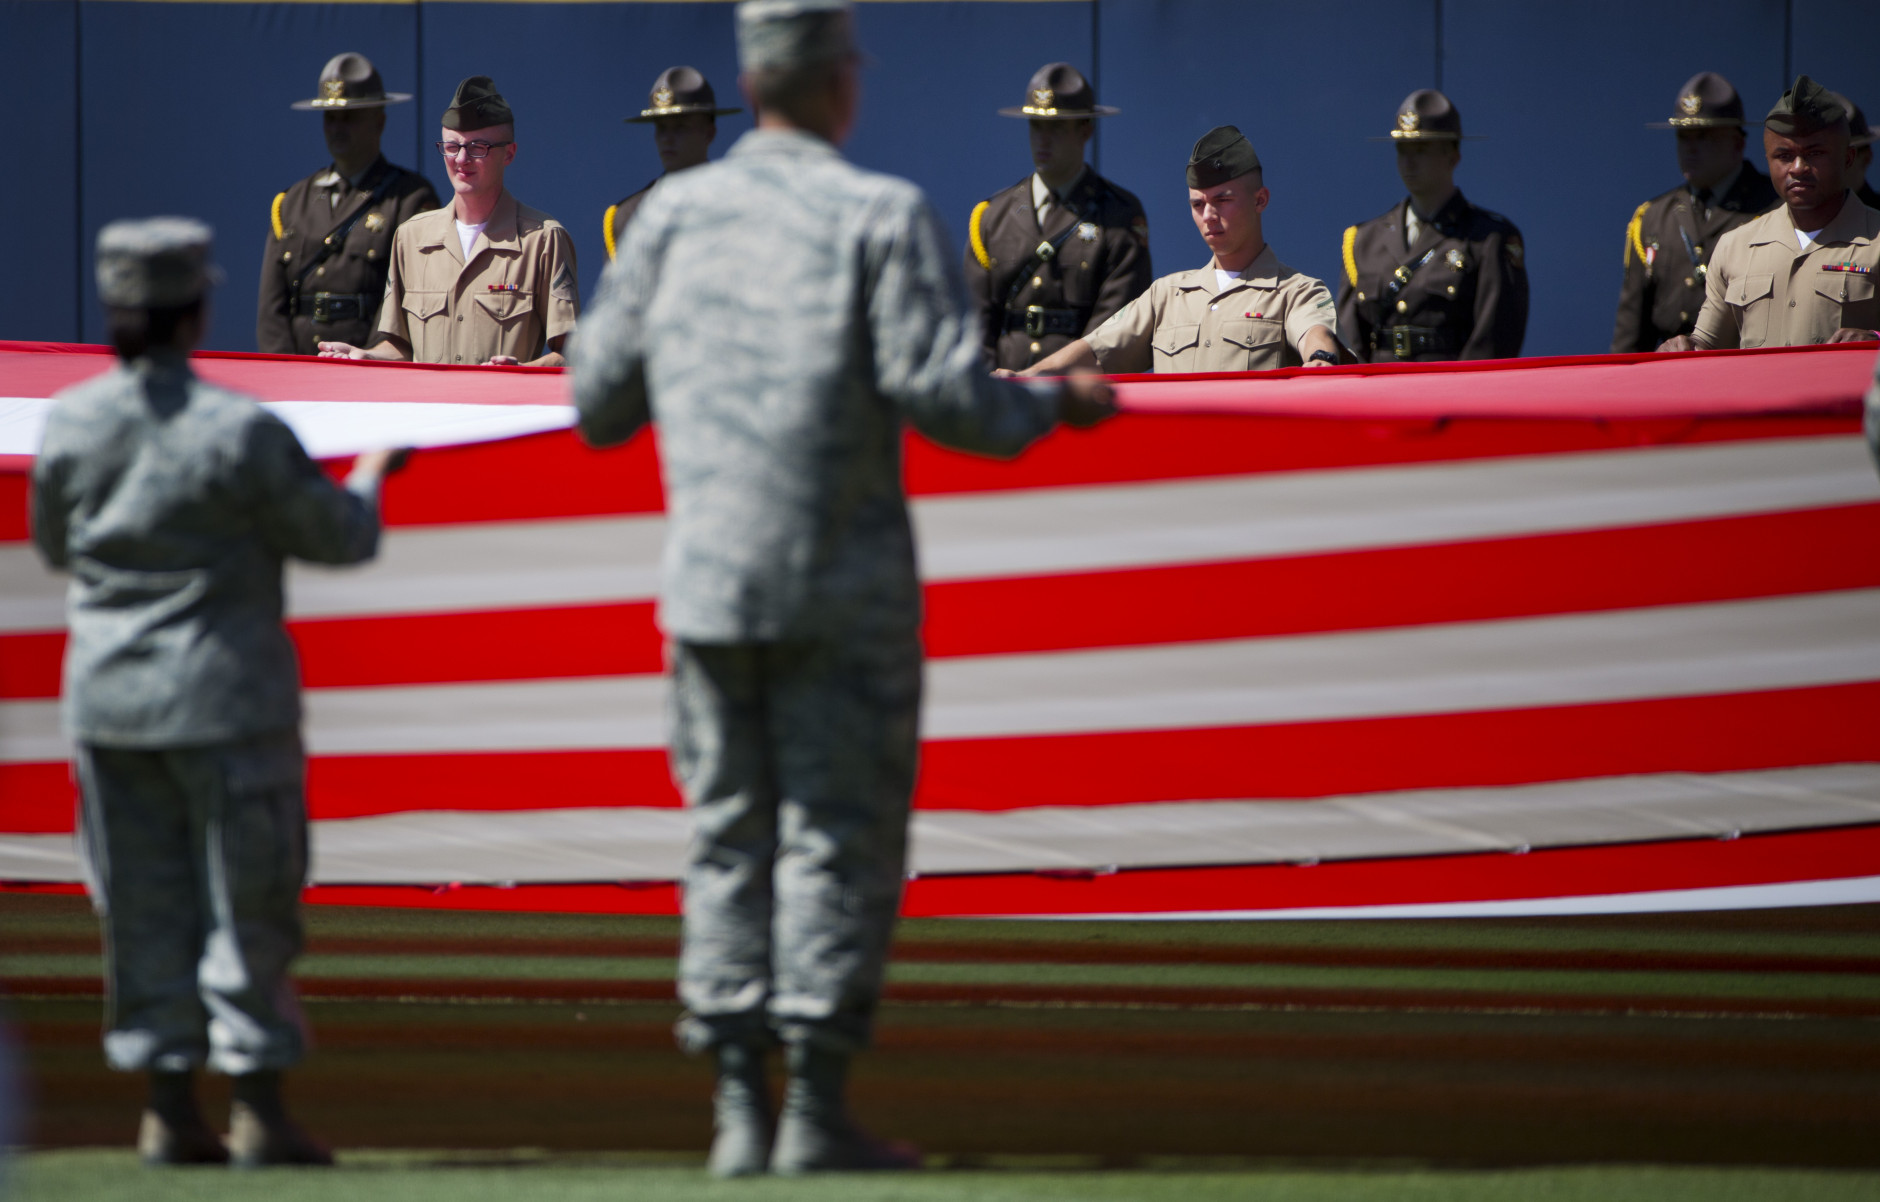 Members of the U.S. military stand at attention while unveiling a giant American flag in the outfield at a Memorial Day ceremony before the start of a baseball game between the Atlanta Braves and the Milwaukee Brewers Saturday, May 23, 2015, in Atlanta. (AP Photo/David Goldman)